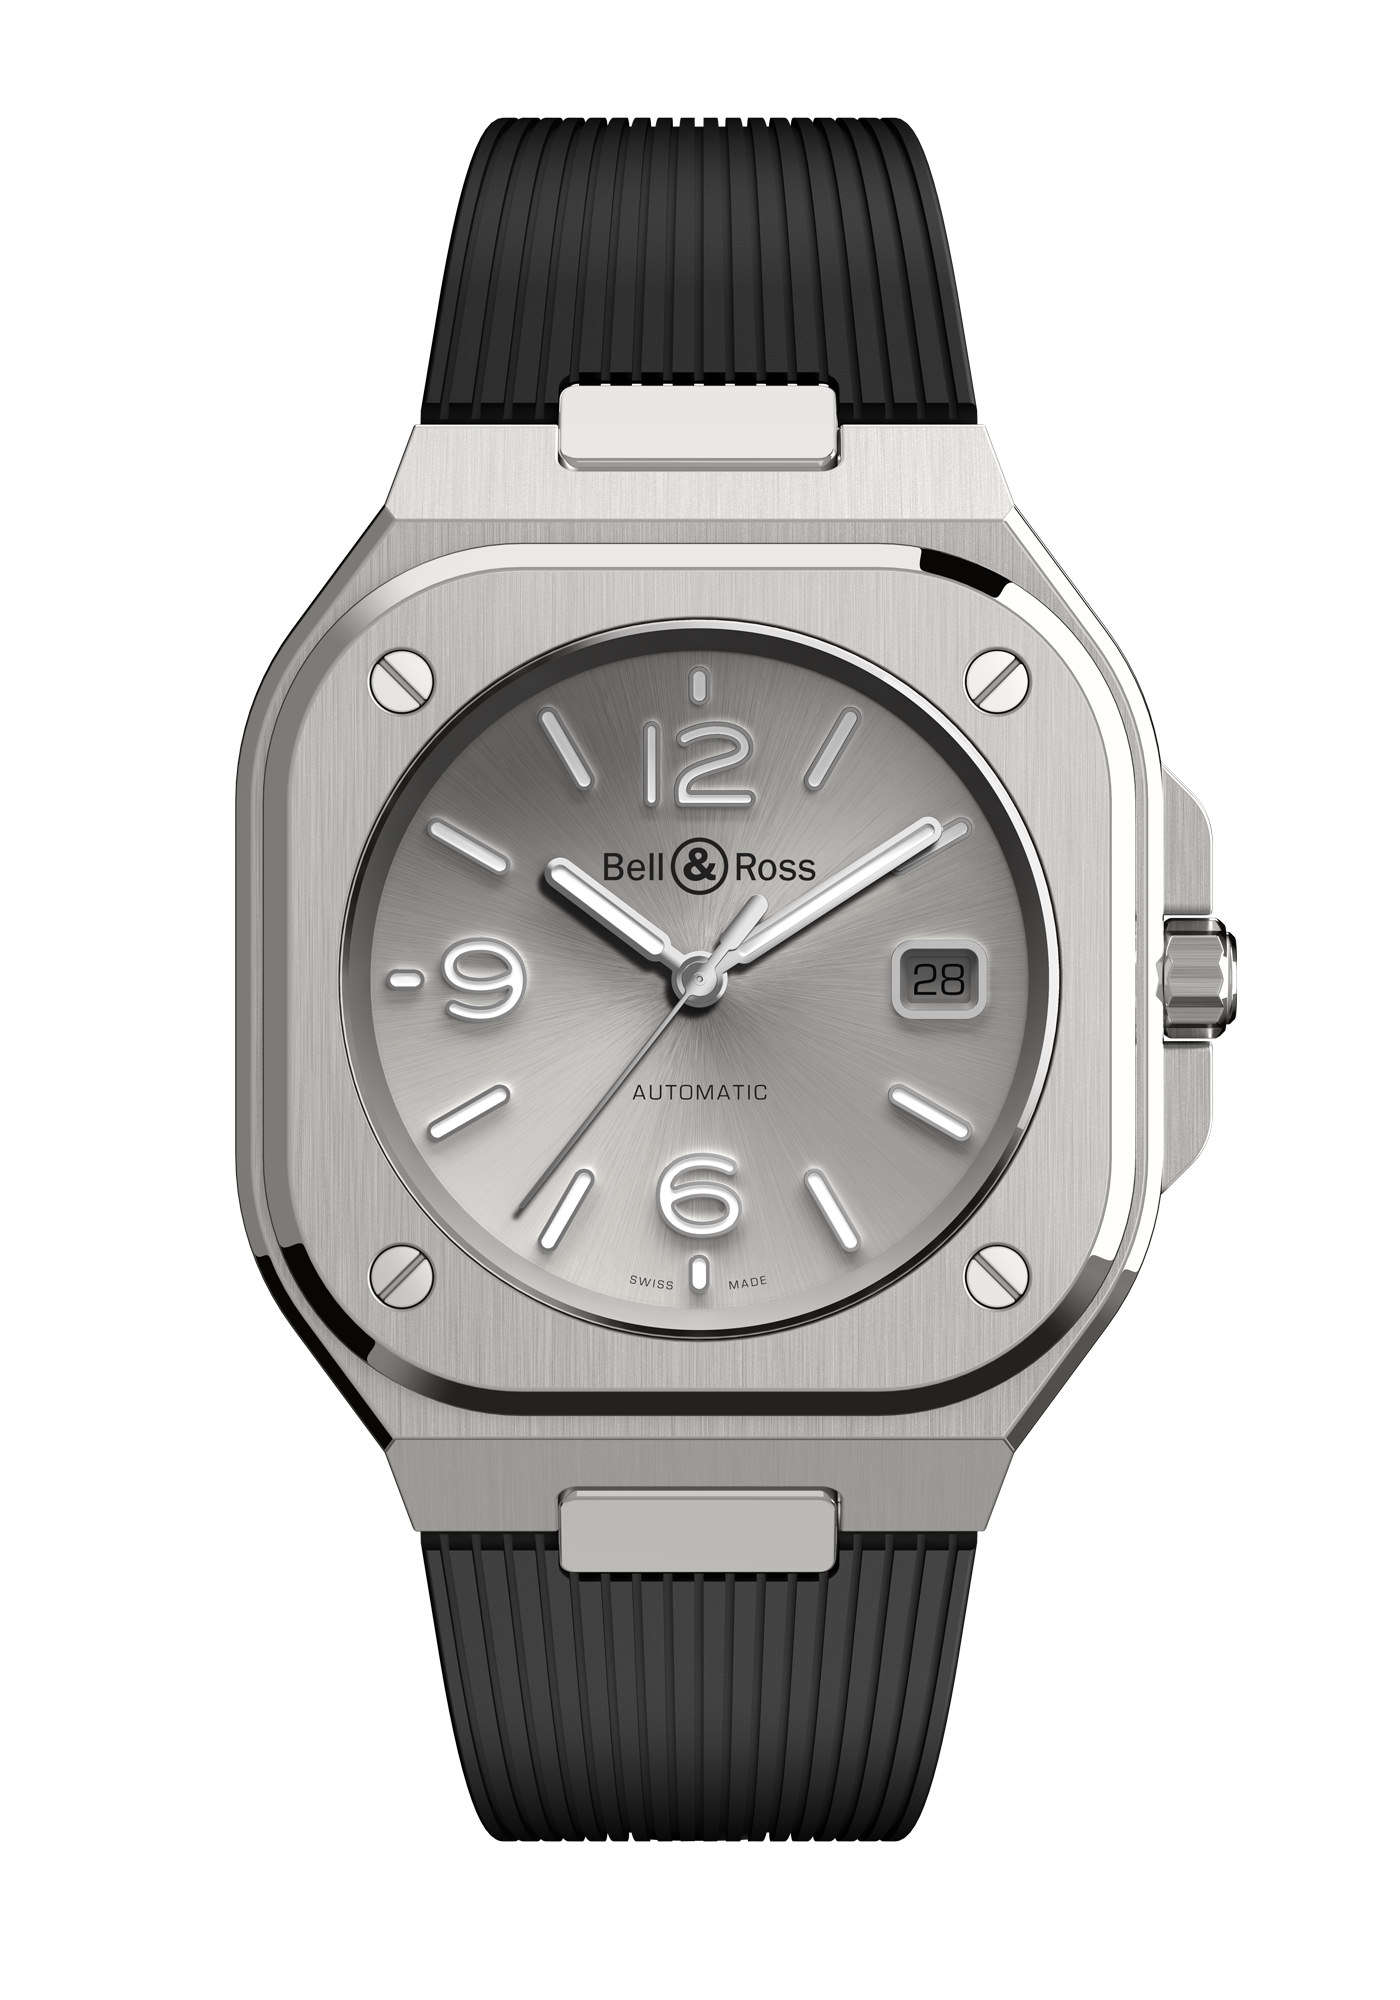 Montre Bell & Ross Nouvelle Collection BR05 Gris Caoutchouc